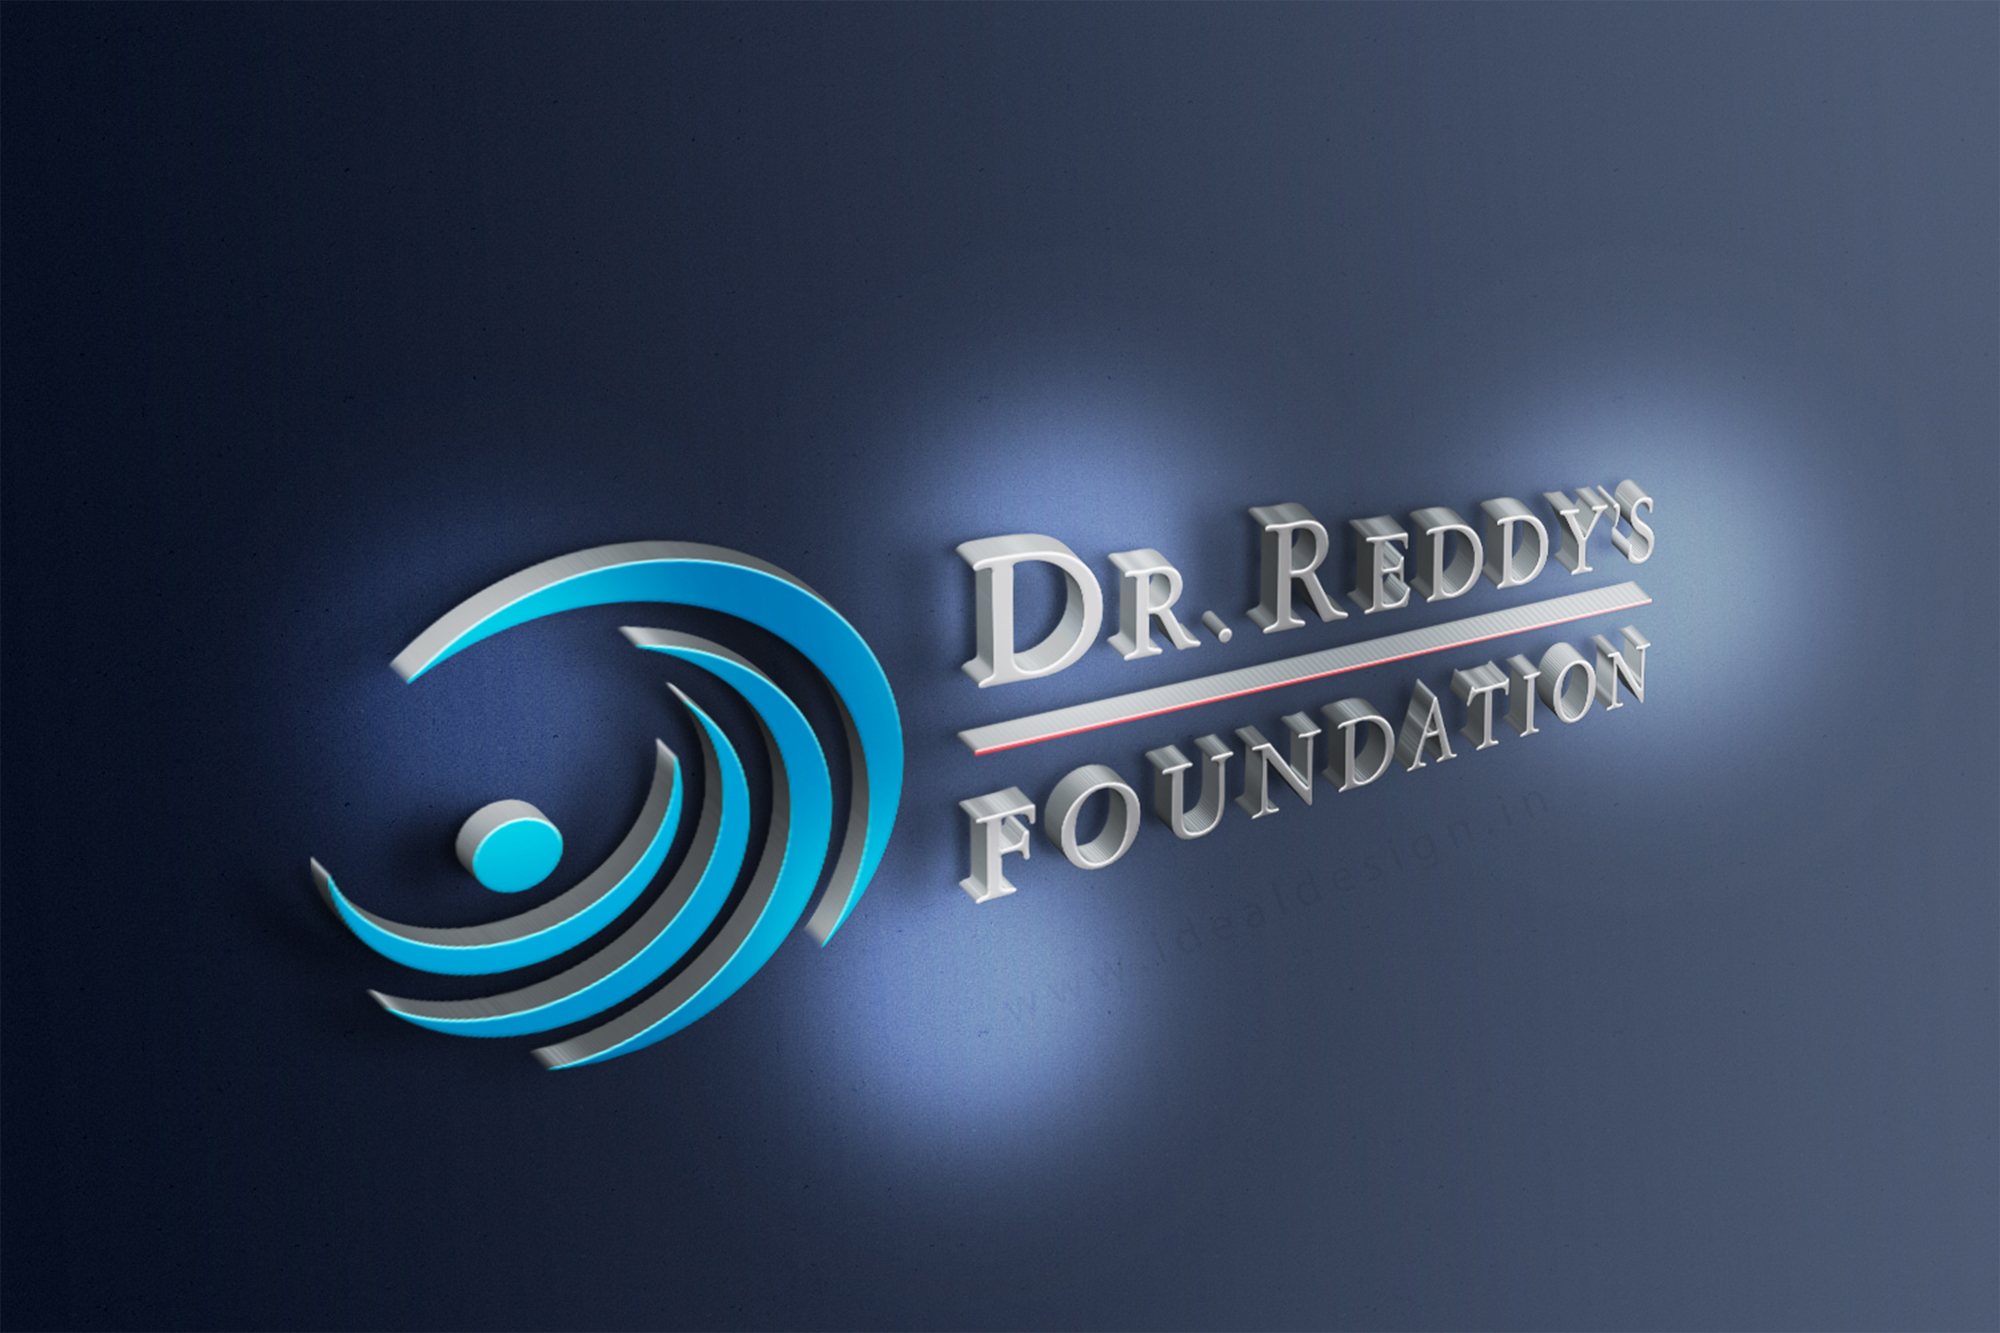 Dr  Reddy's Foundation Logo Design Hyderabad, India - Ideal